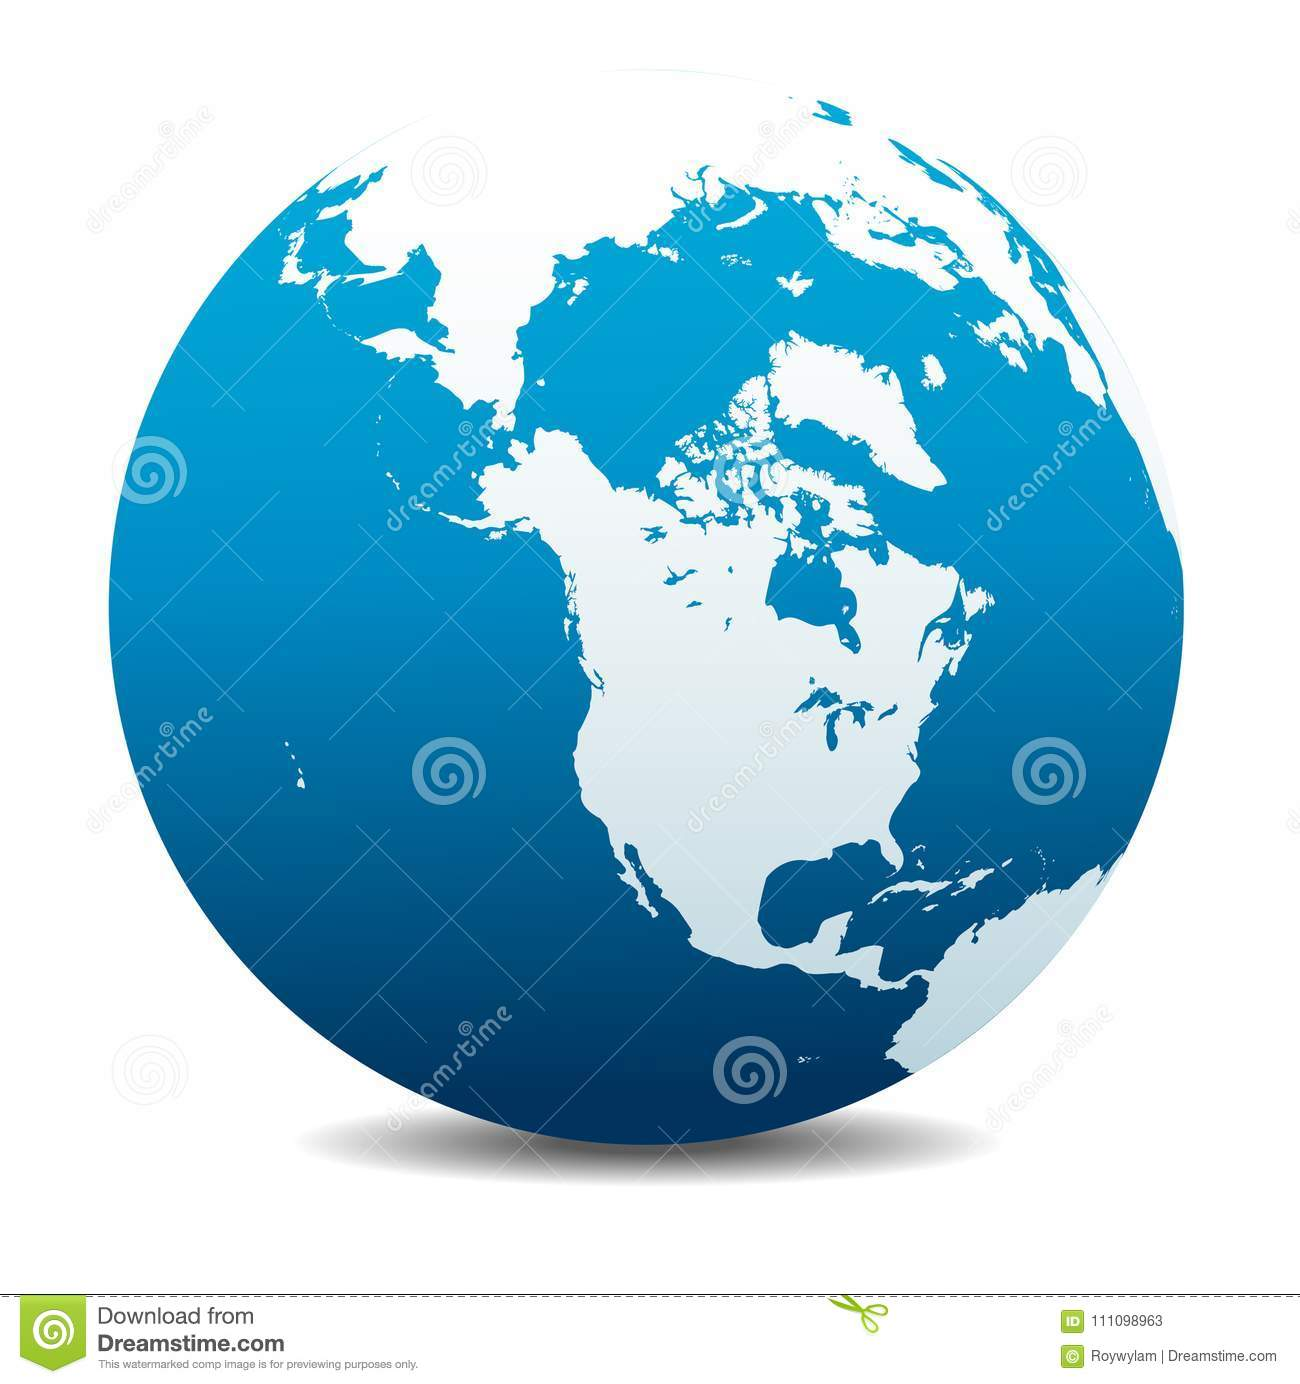 Where Is Siberia On A World Map.Canada North America Siberia And Japan Global World Planet Earth